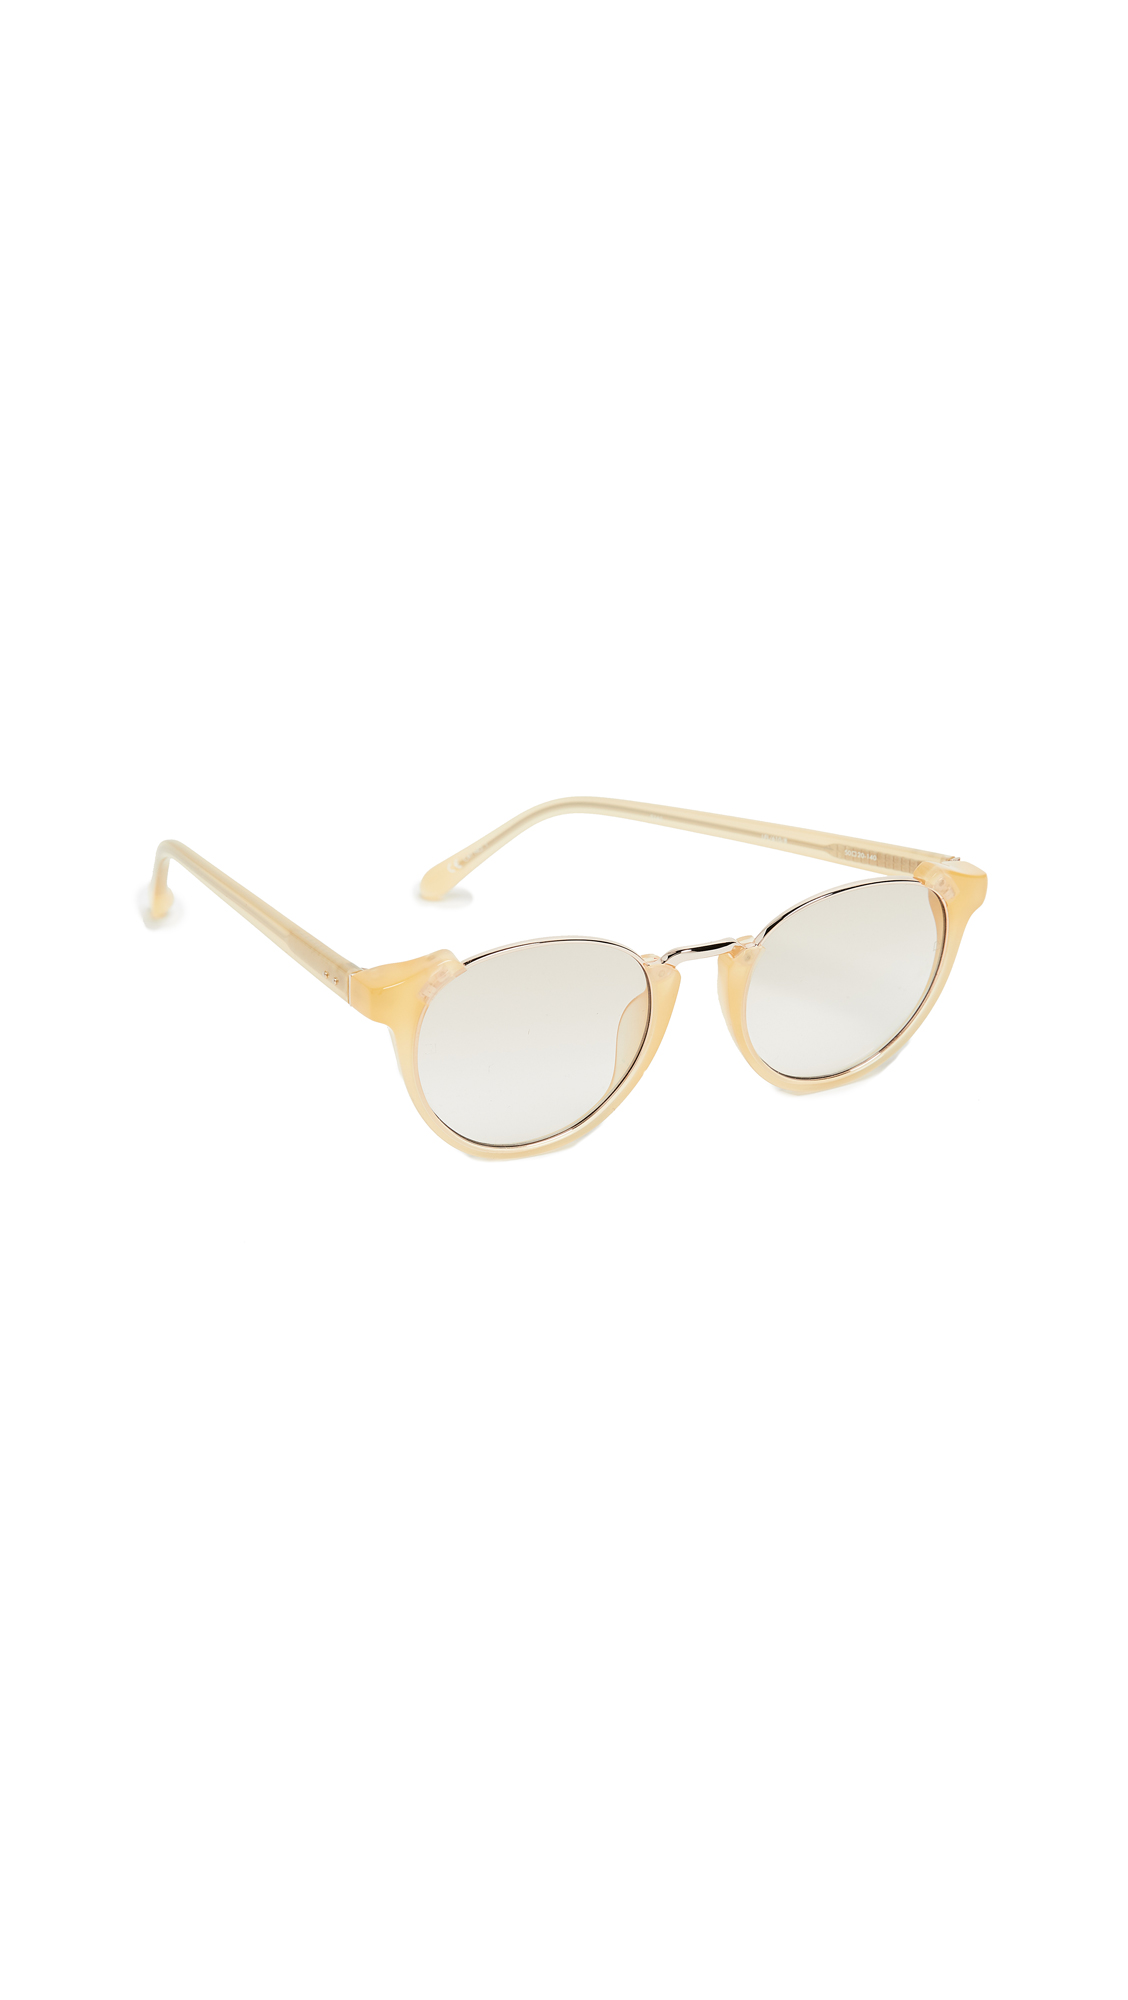 Linda Farrow Luxe Round Combo Sunglasses In Yellow/Taupe